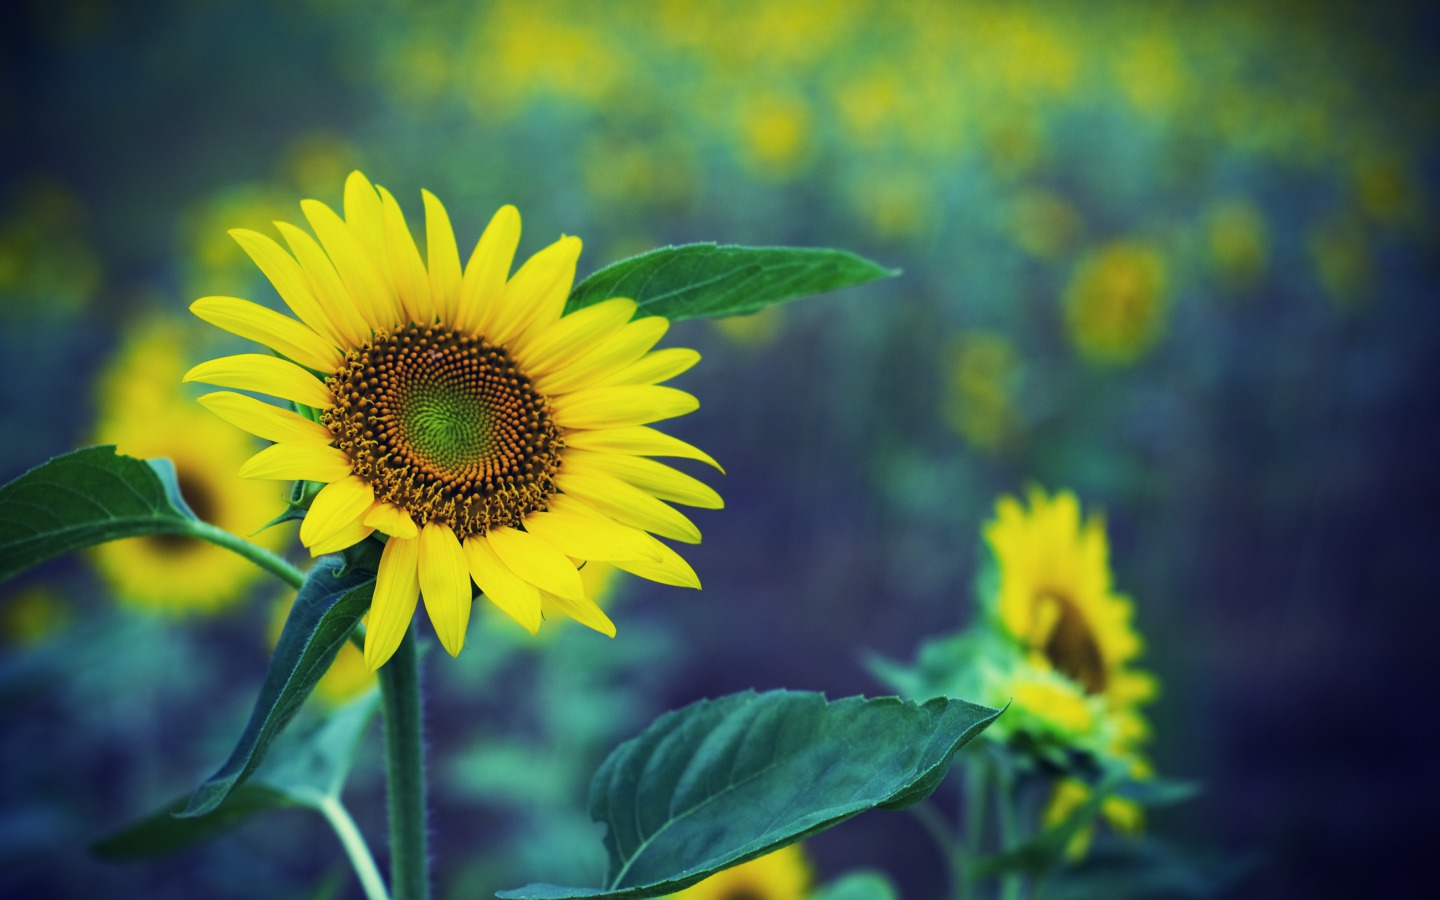 flowers images sunflowers hd wallpaper and background photos (33340948)